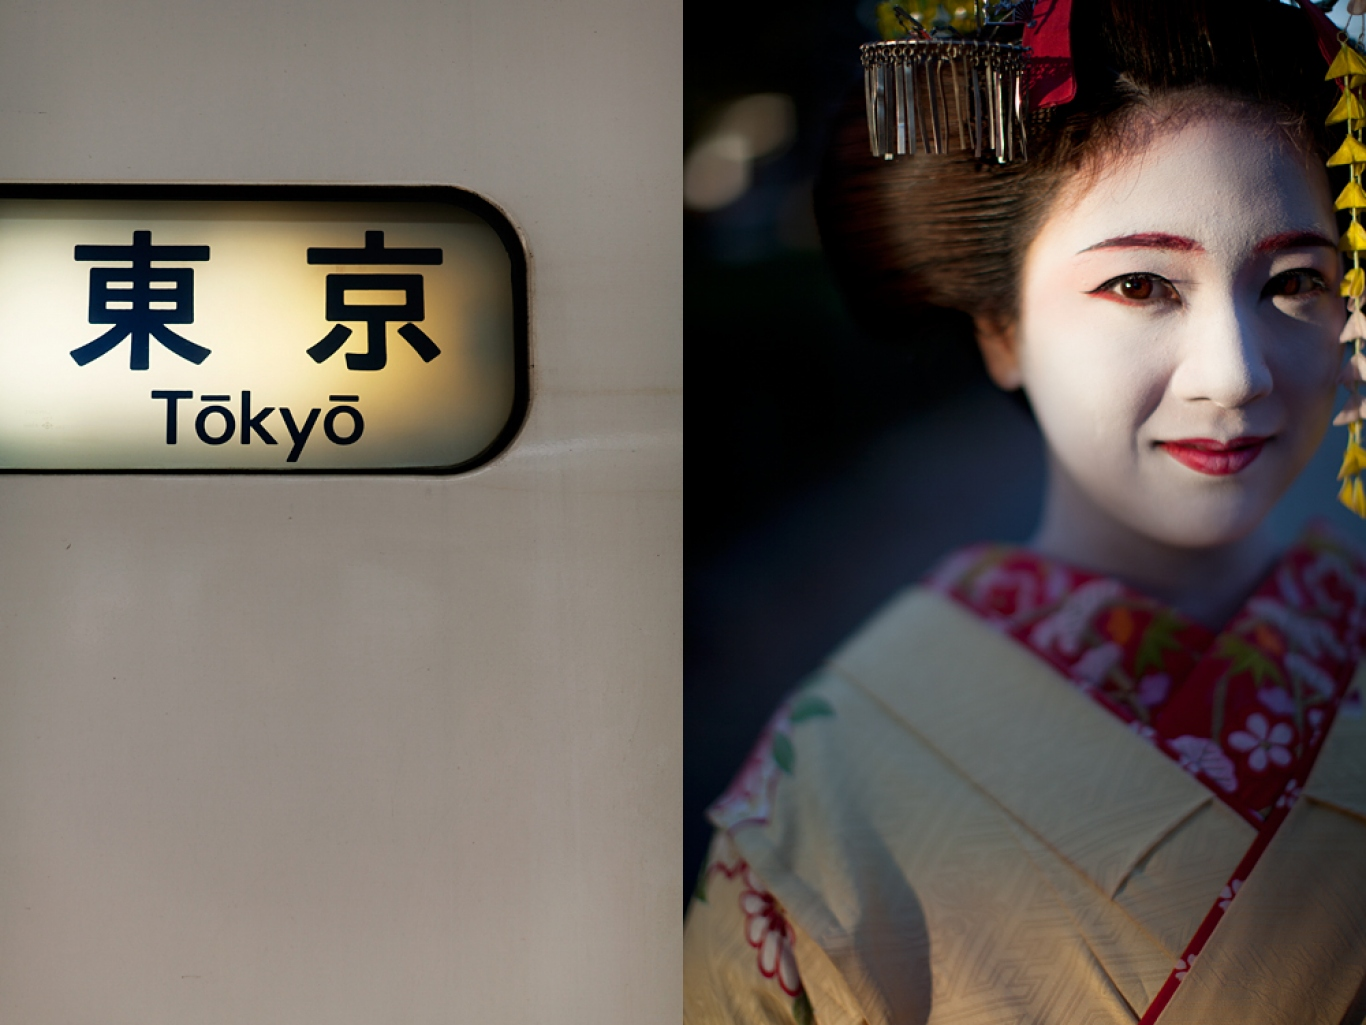 Juxtaposed images: left hand side is of illuminated sign (Toyko) and right hand side is of Japanese lady dressed as a geisha.